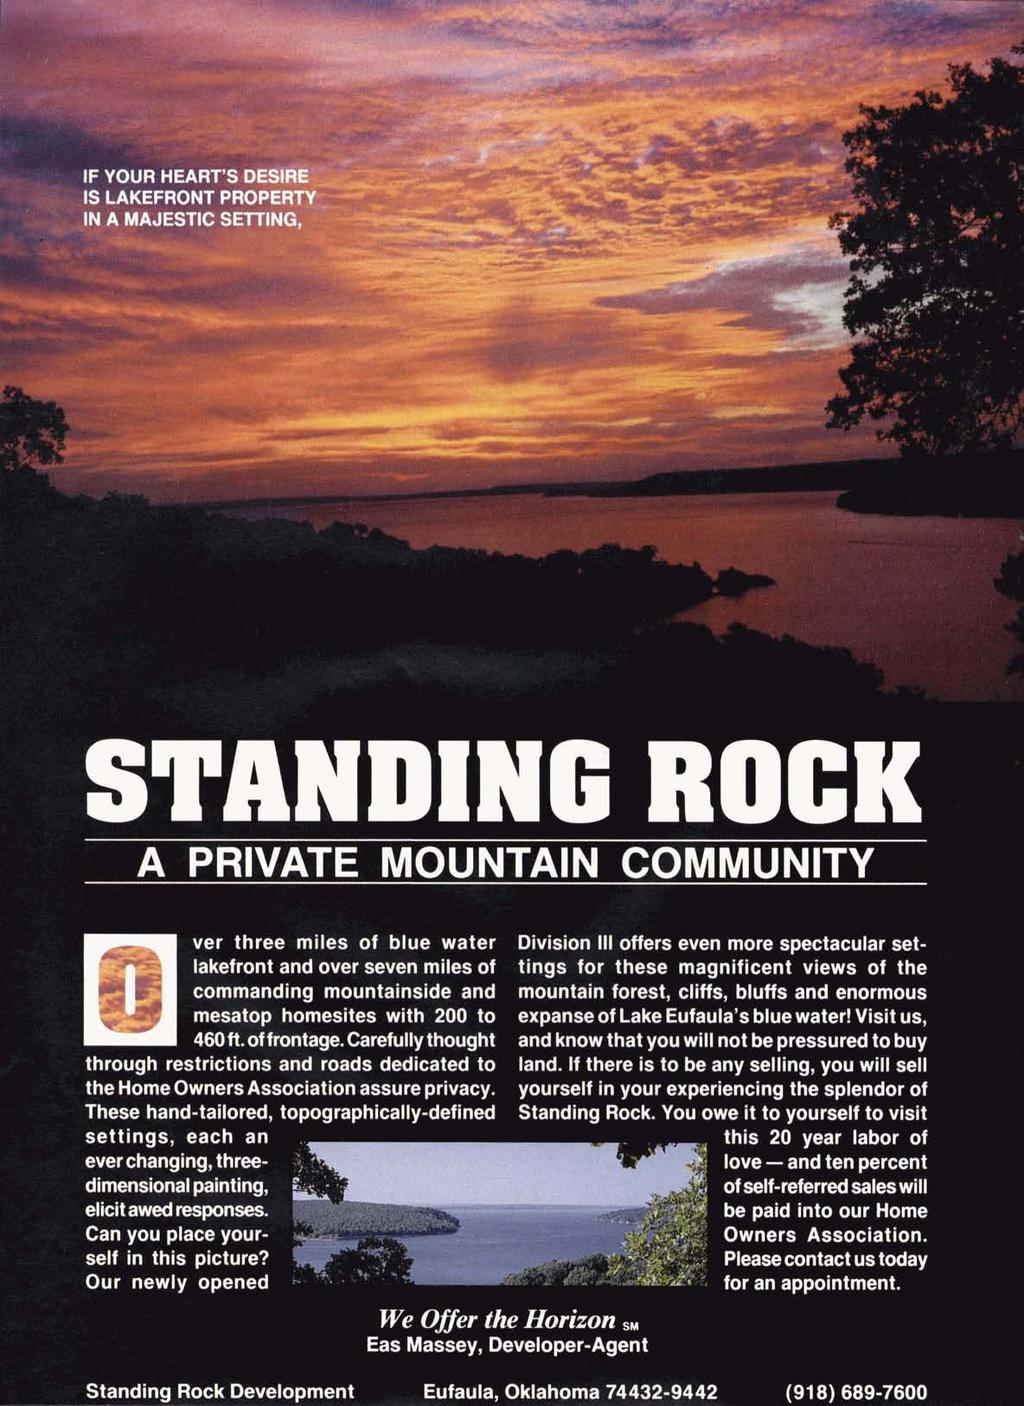 Standing Rock Development Eufaula, Oklahoma 74432-9442 (91 8) 689-7600 A PRIVATE MOUNTAIN COMMUNITY ver three miles of blue water Division Ill offers even more spectacular setlakefront and over seven